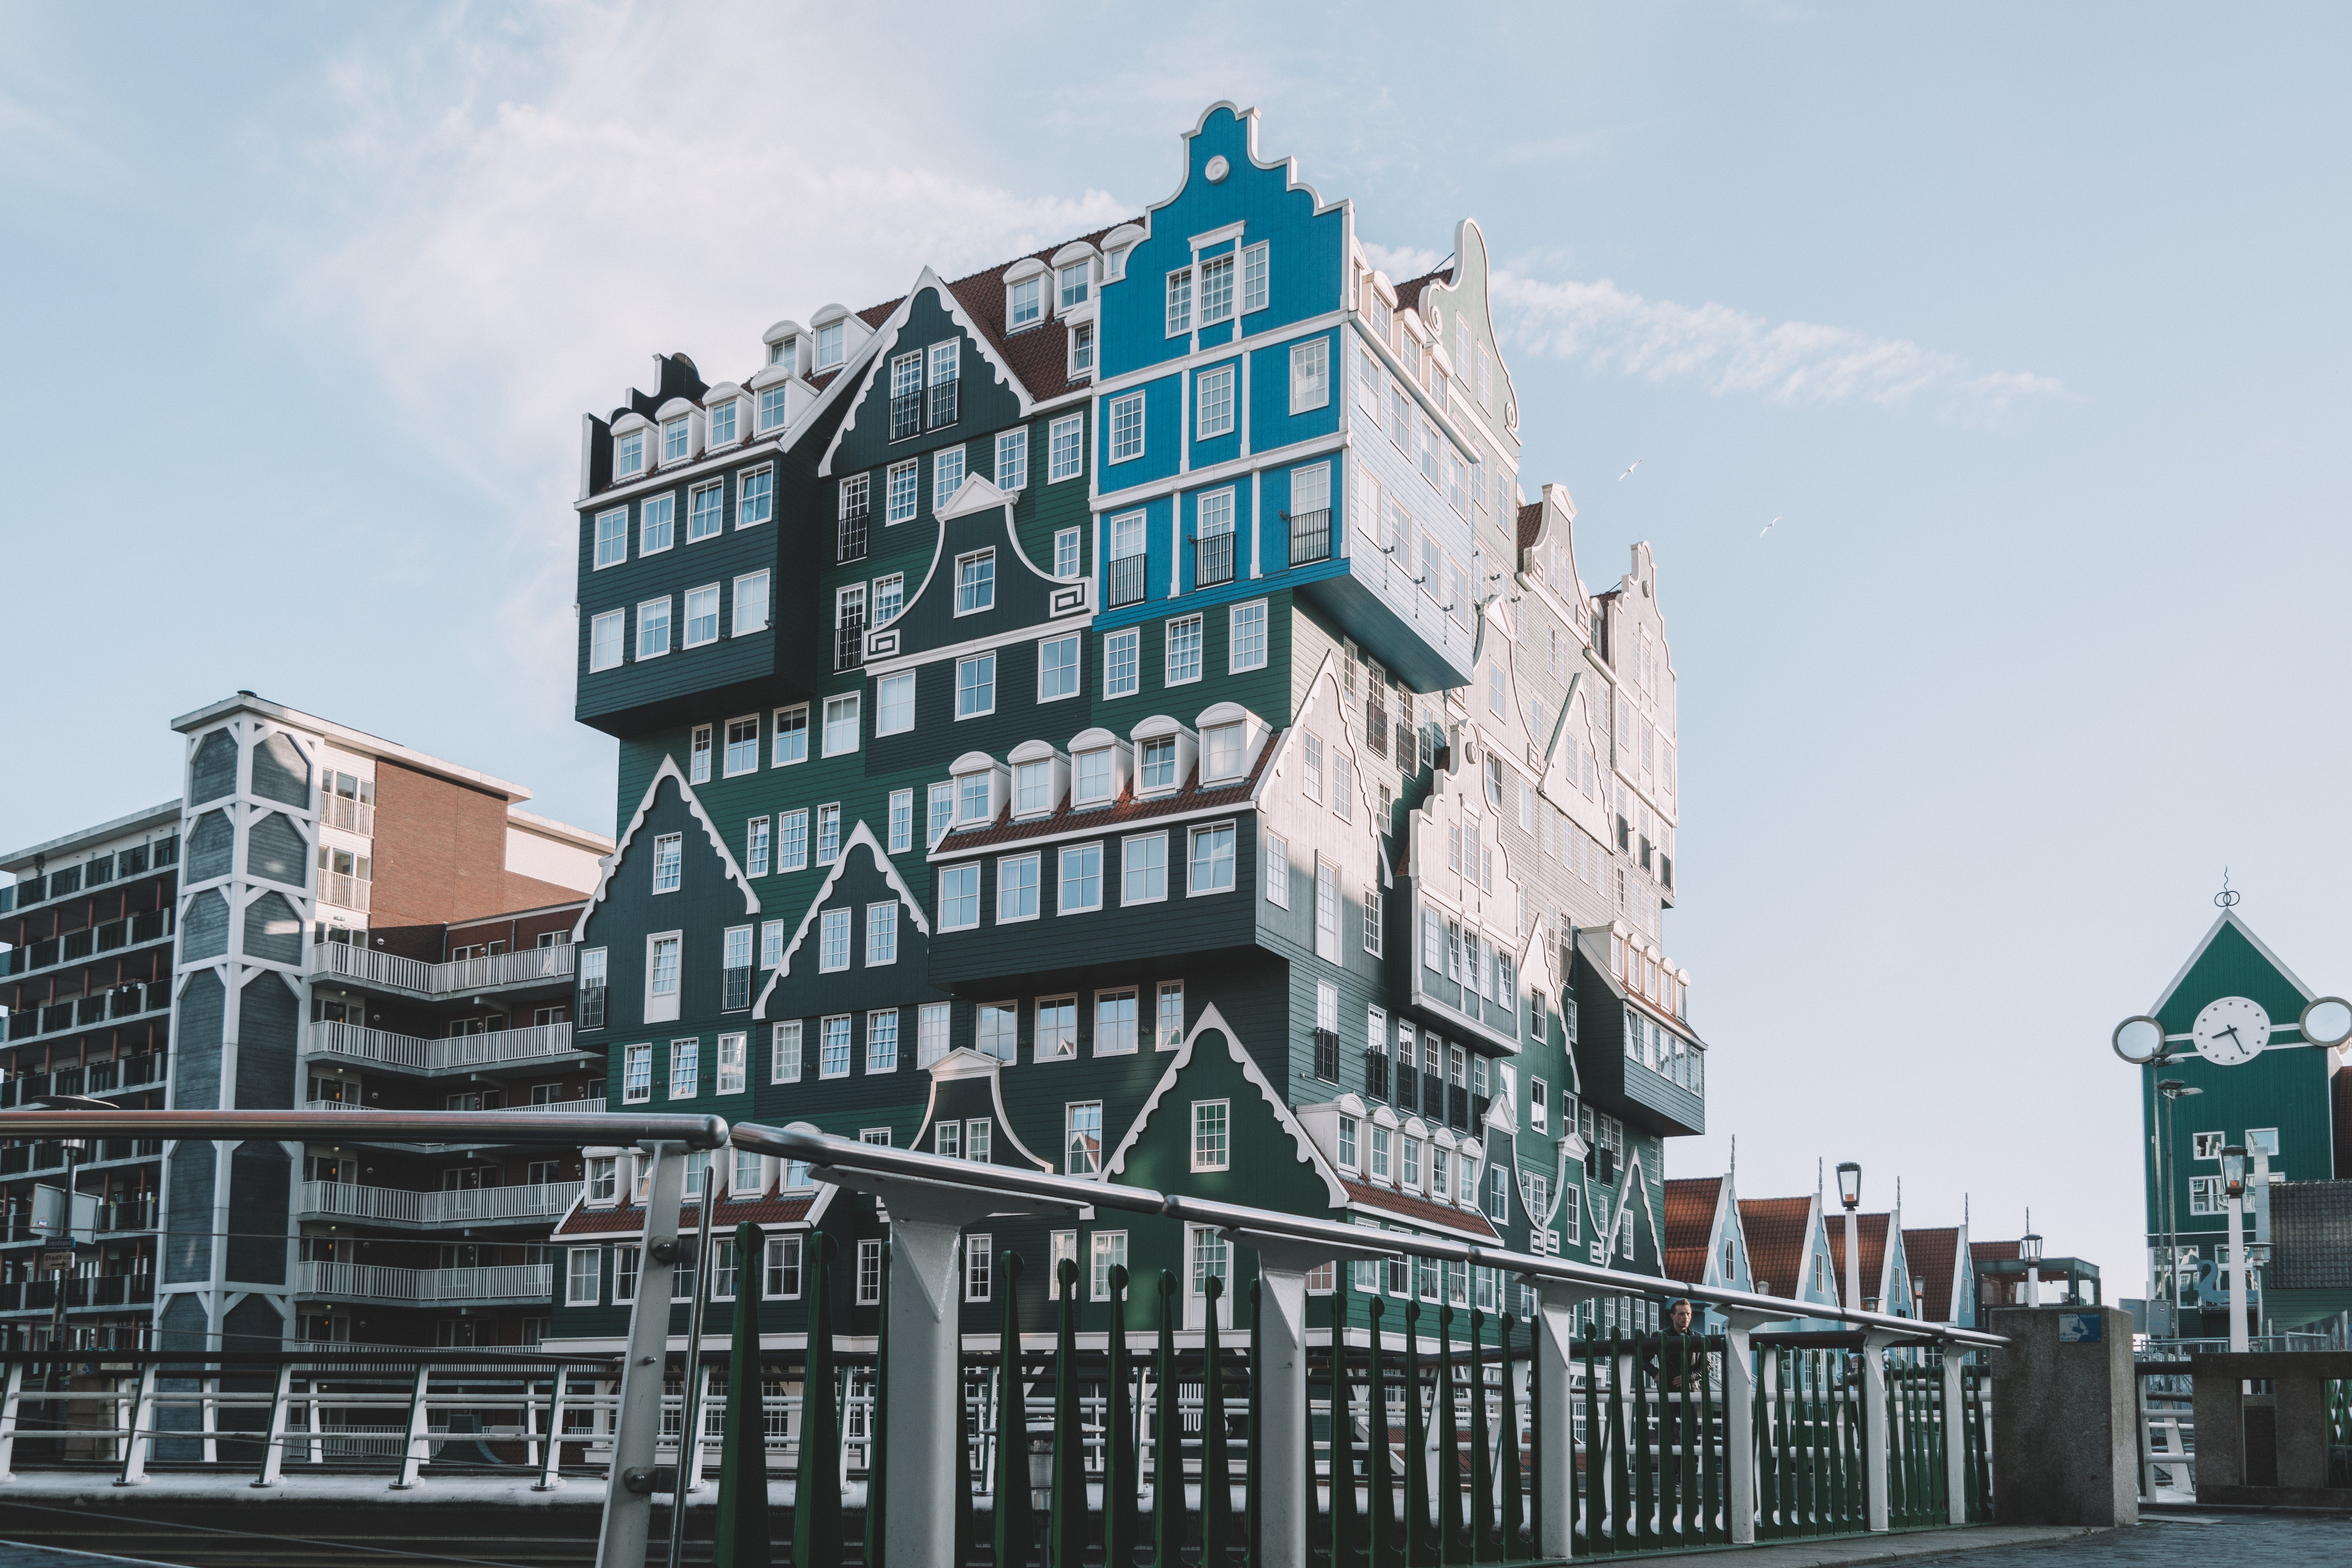 Green and Blue Multi-story Building